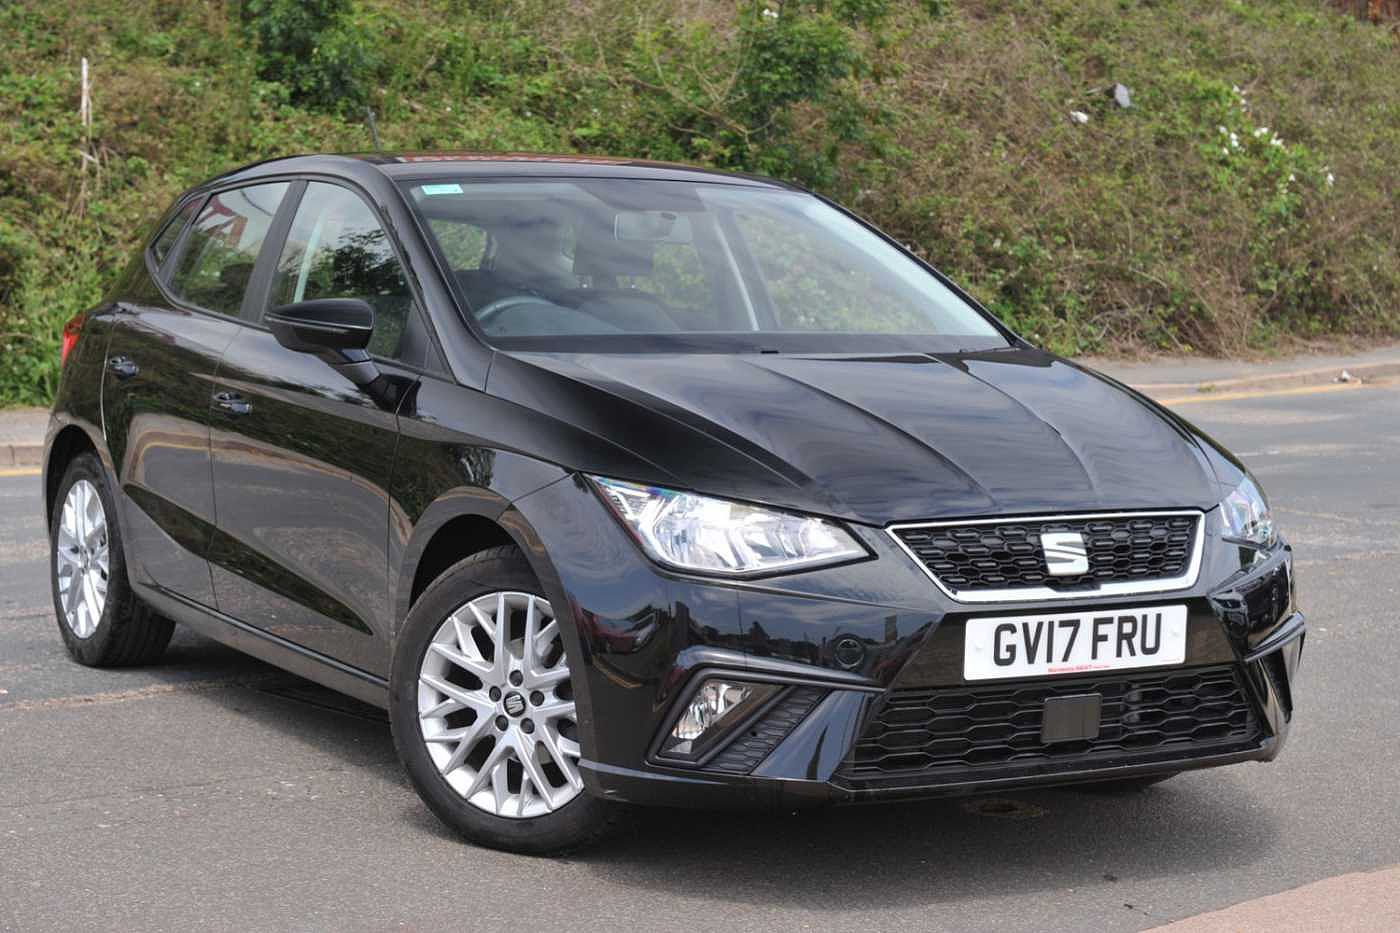 Used Seat Ibiza Cars For Sale Bartletts Seat